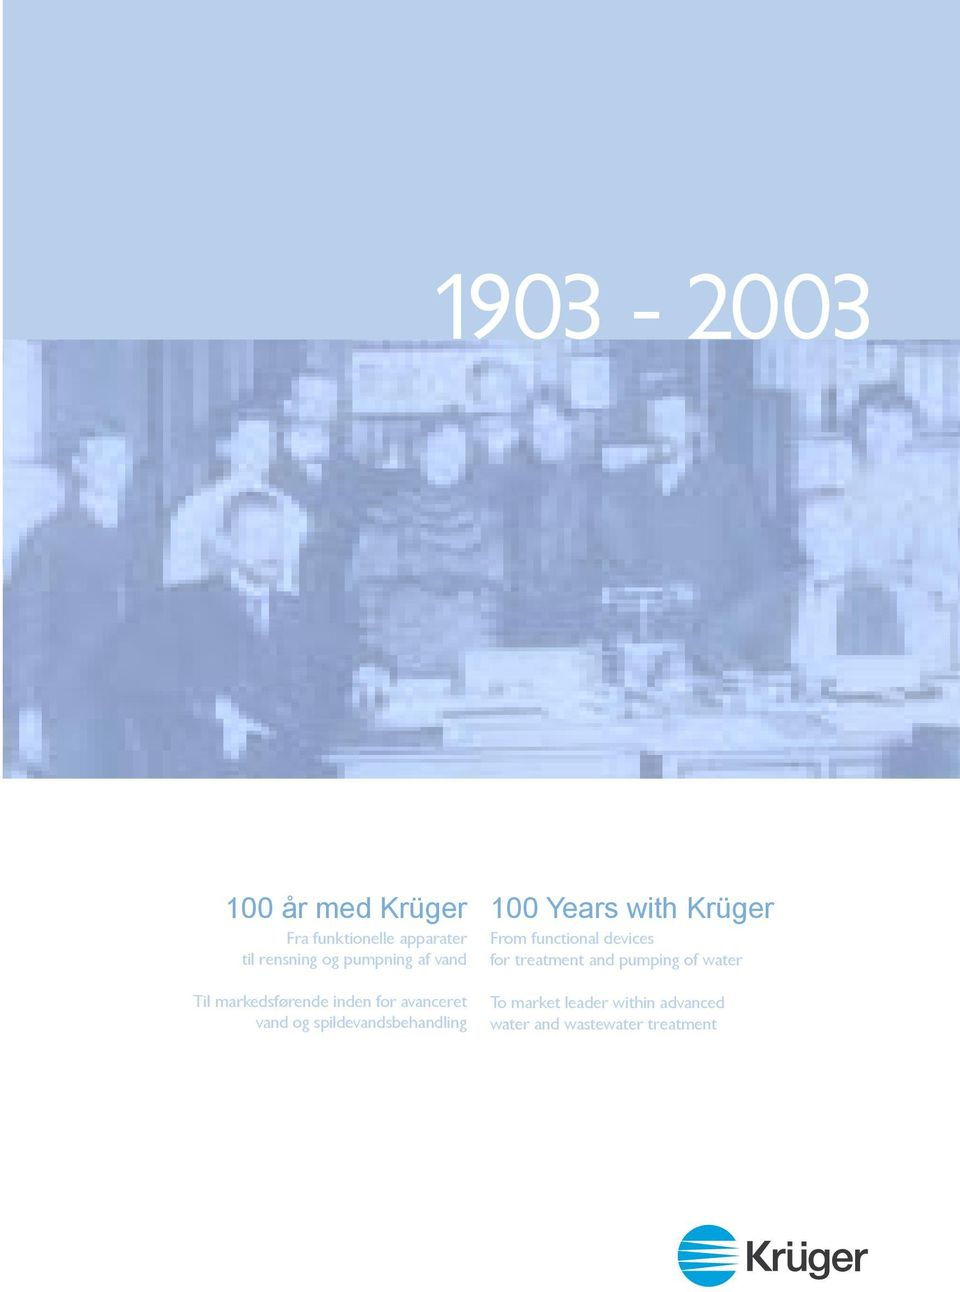 spildevandsbehandling 100 Years with Krüger From functional devices for